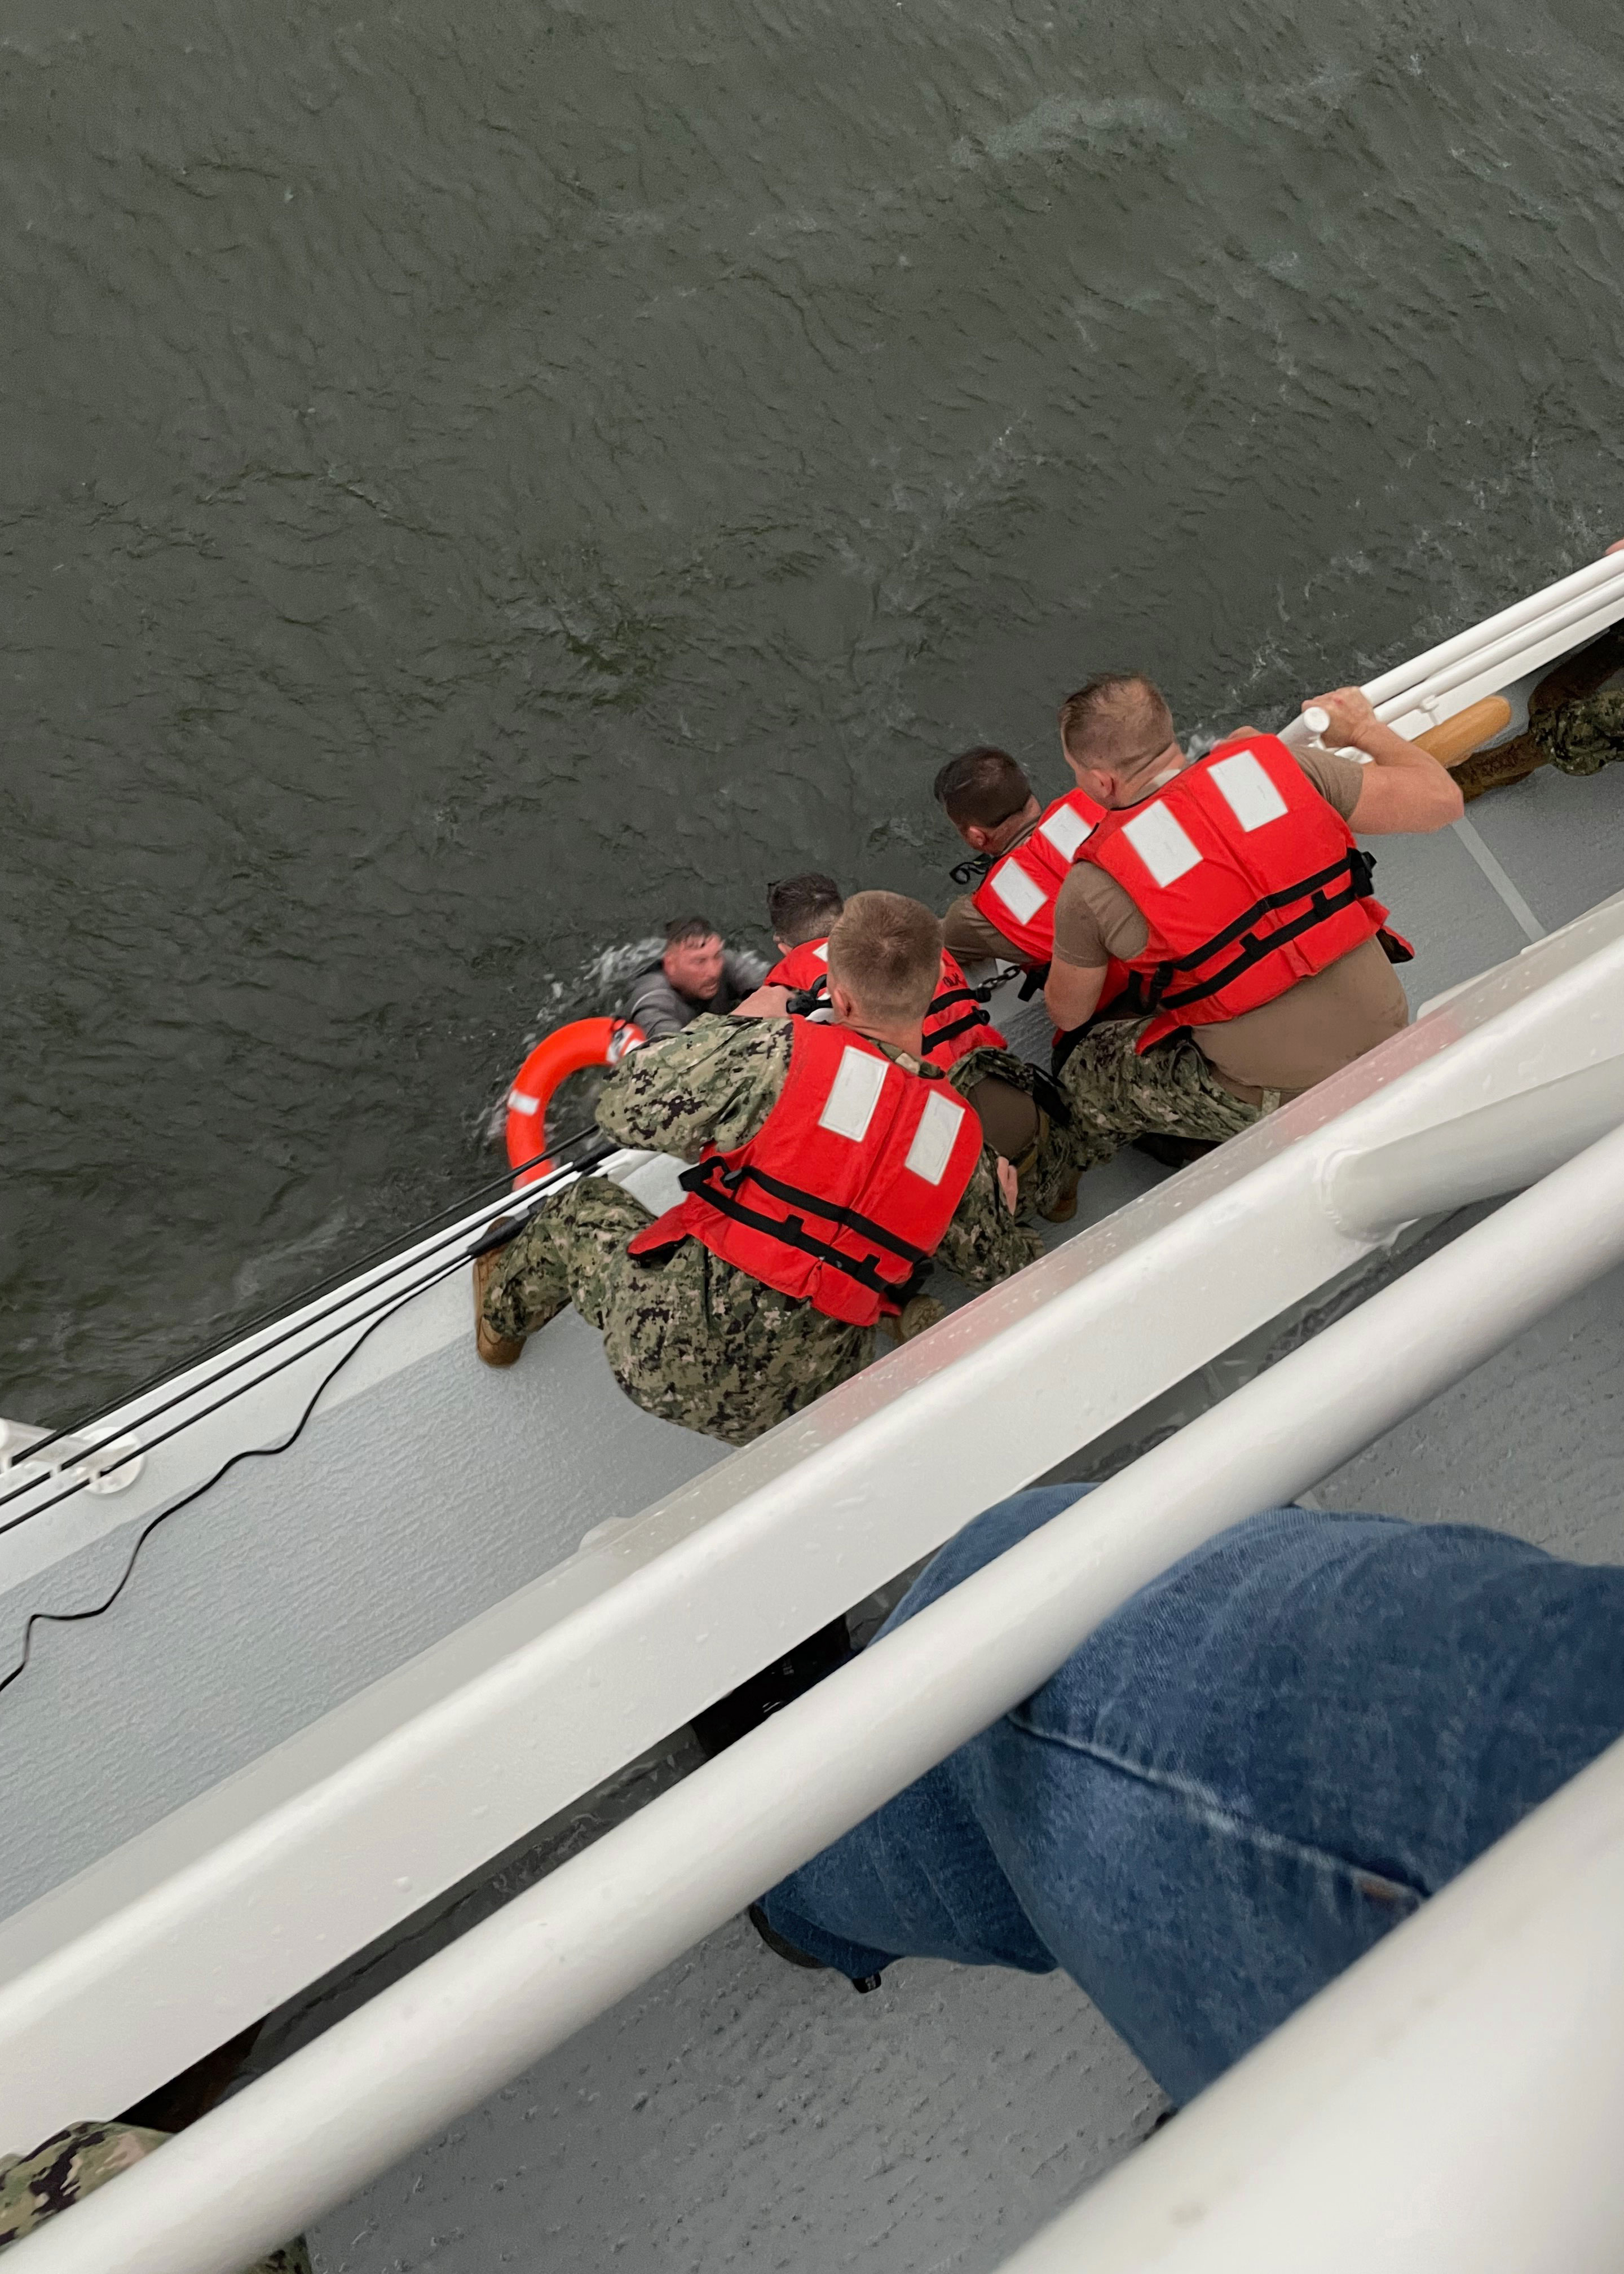 Search operations continue overnight for the 12 people still missing from capsized ship off Louisiana coast